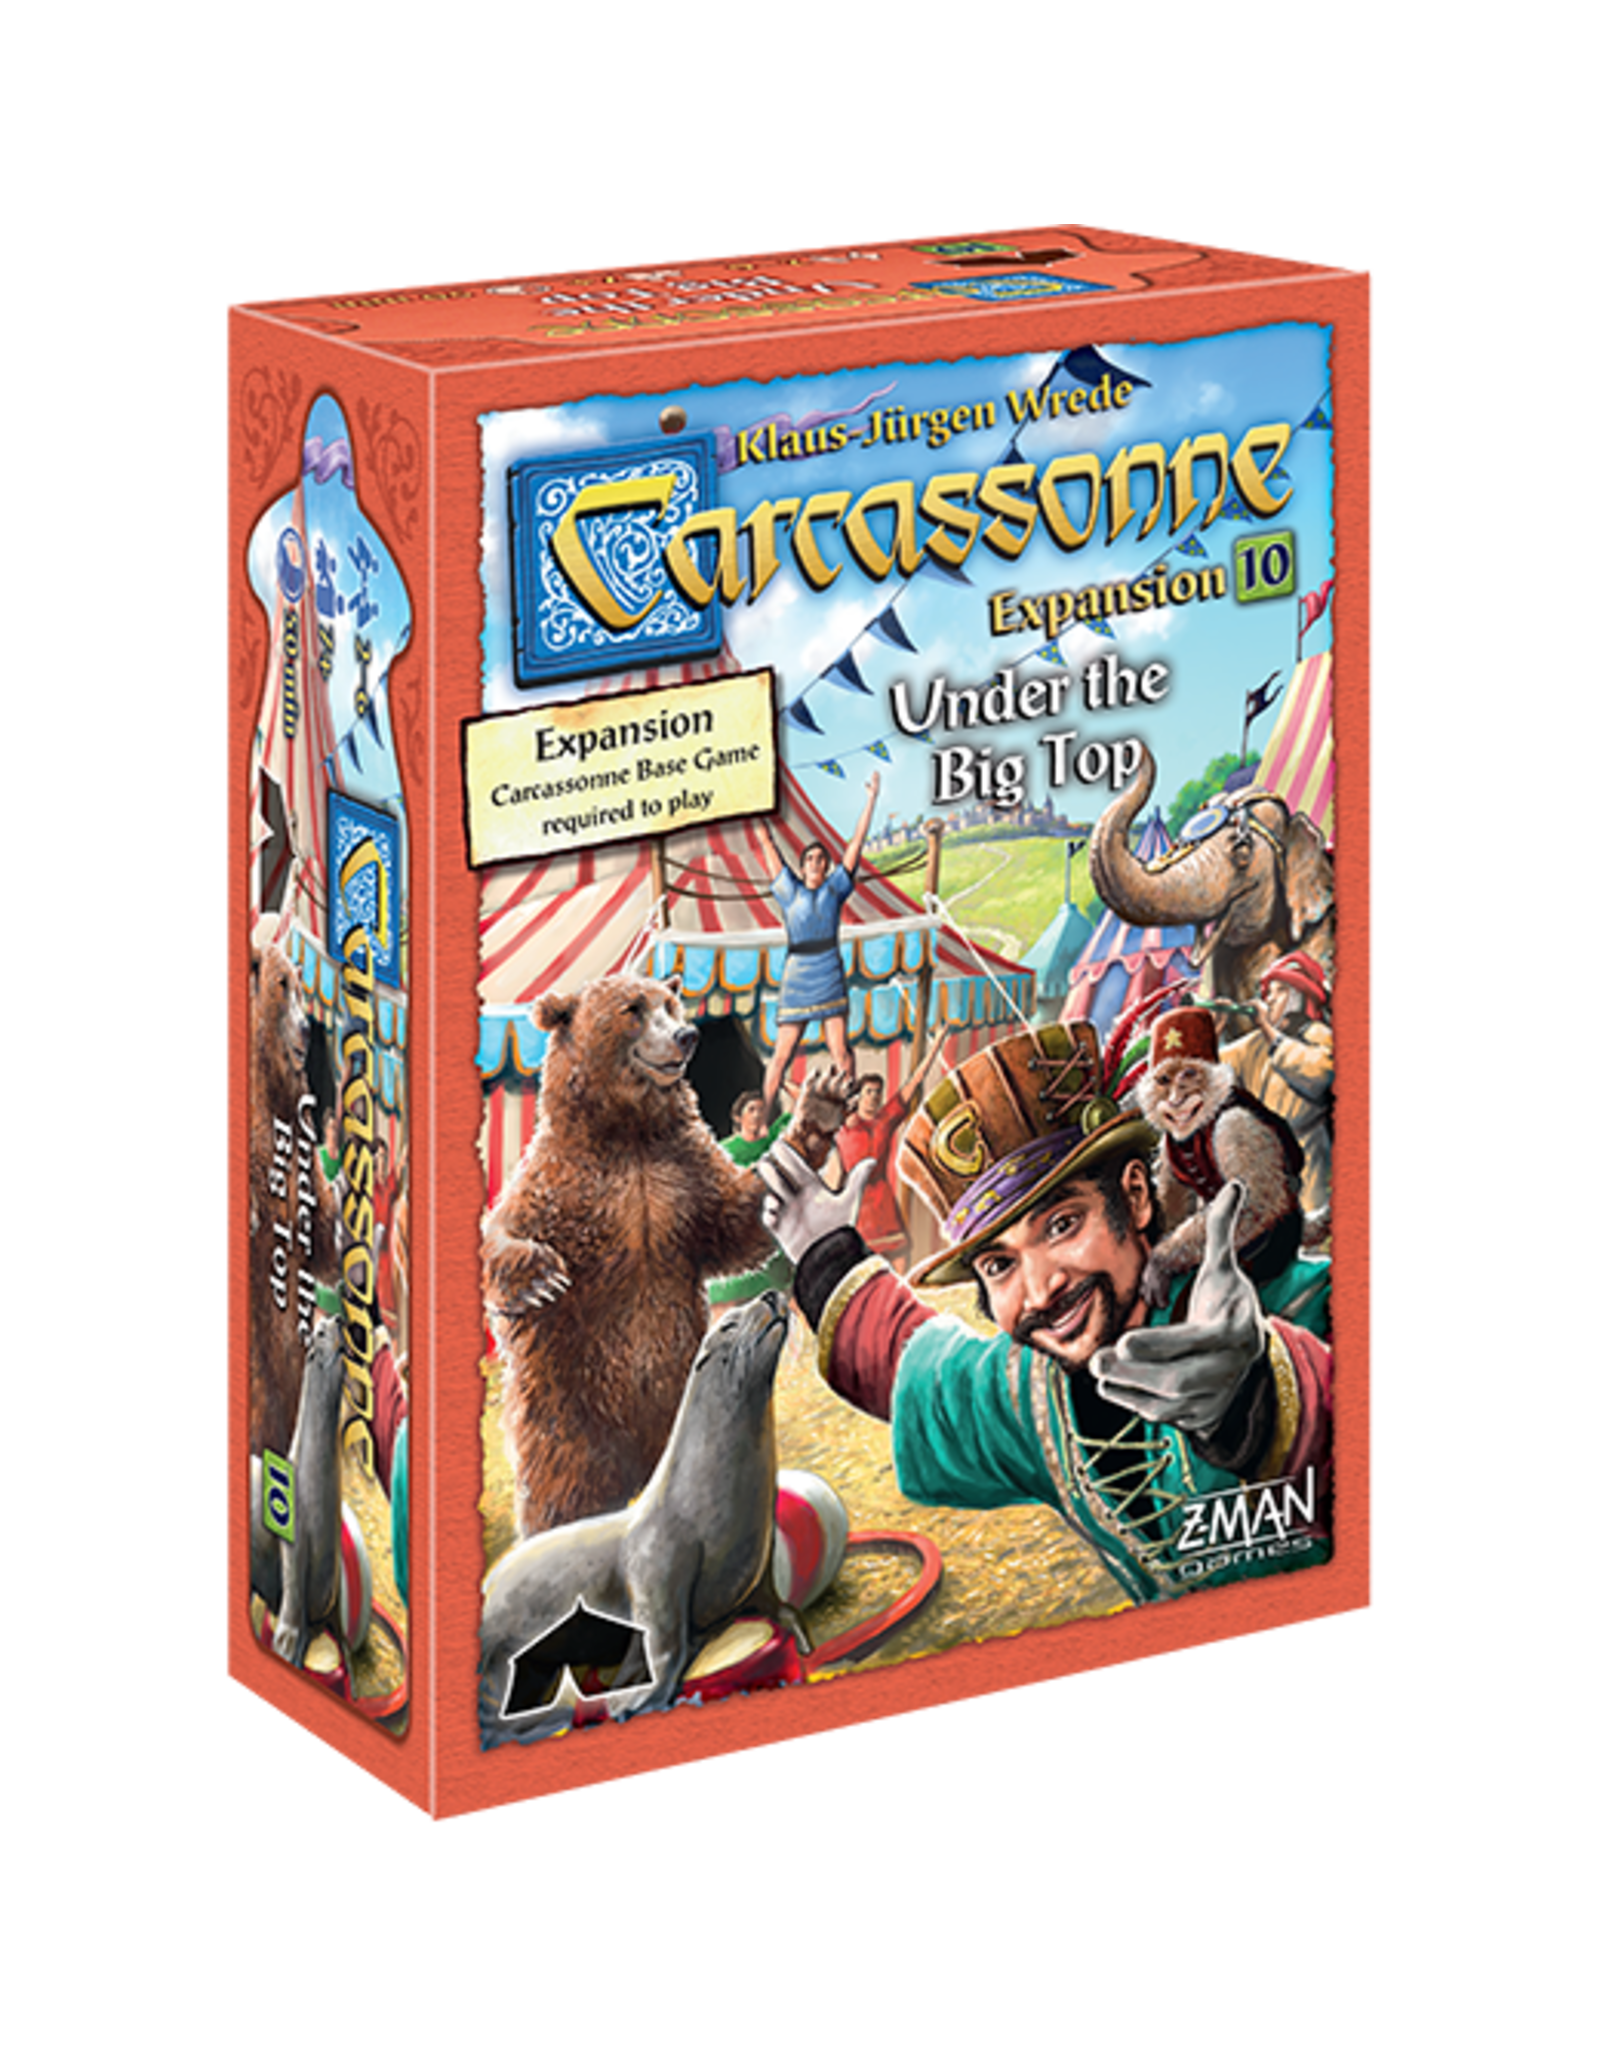 Carcassonne Expansion 10 Under the Big Top